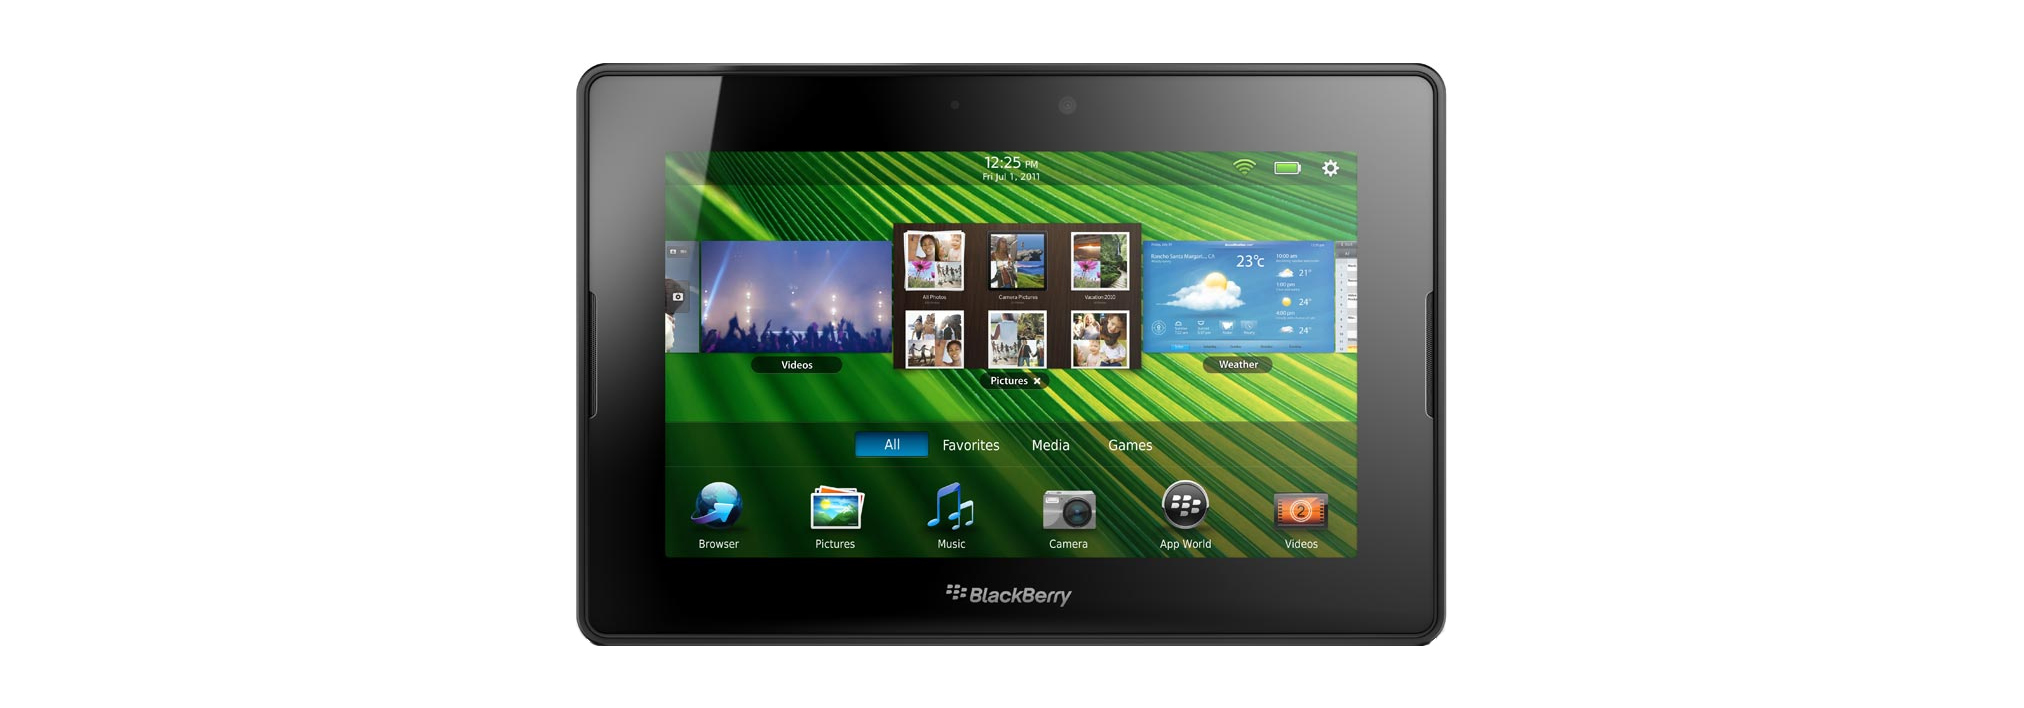 Blackberry Playbook green user interface